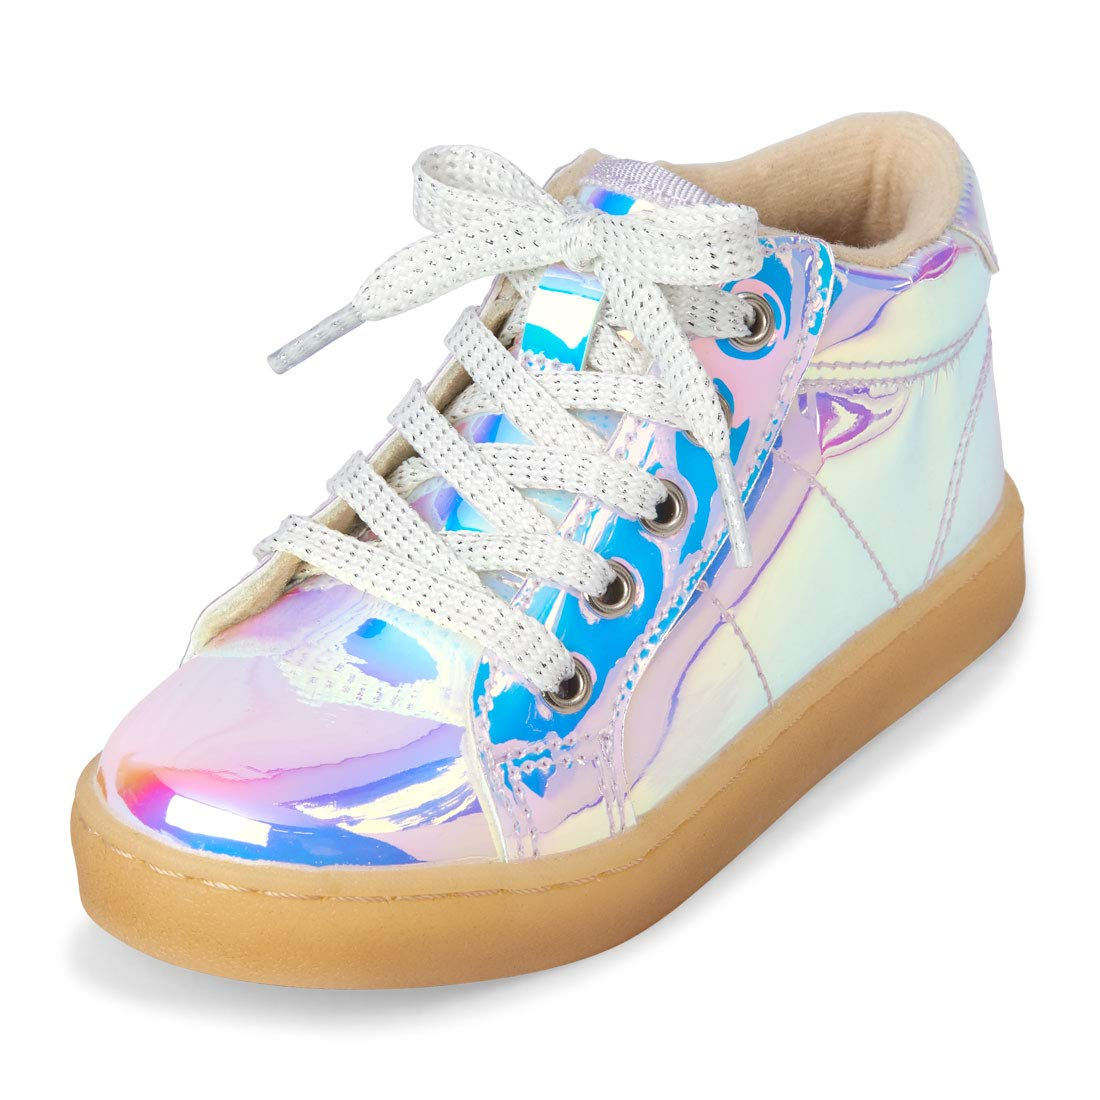 The Childrens Place Kids Fashion Sneakers